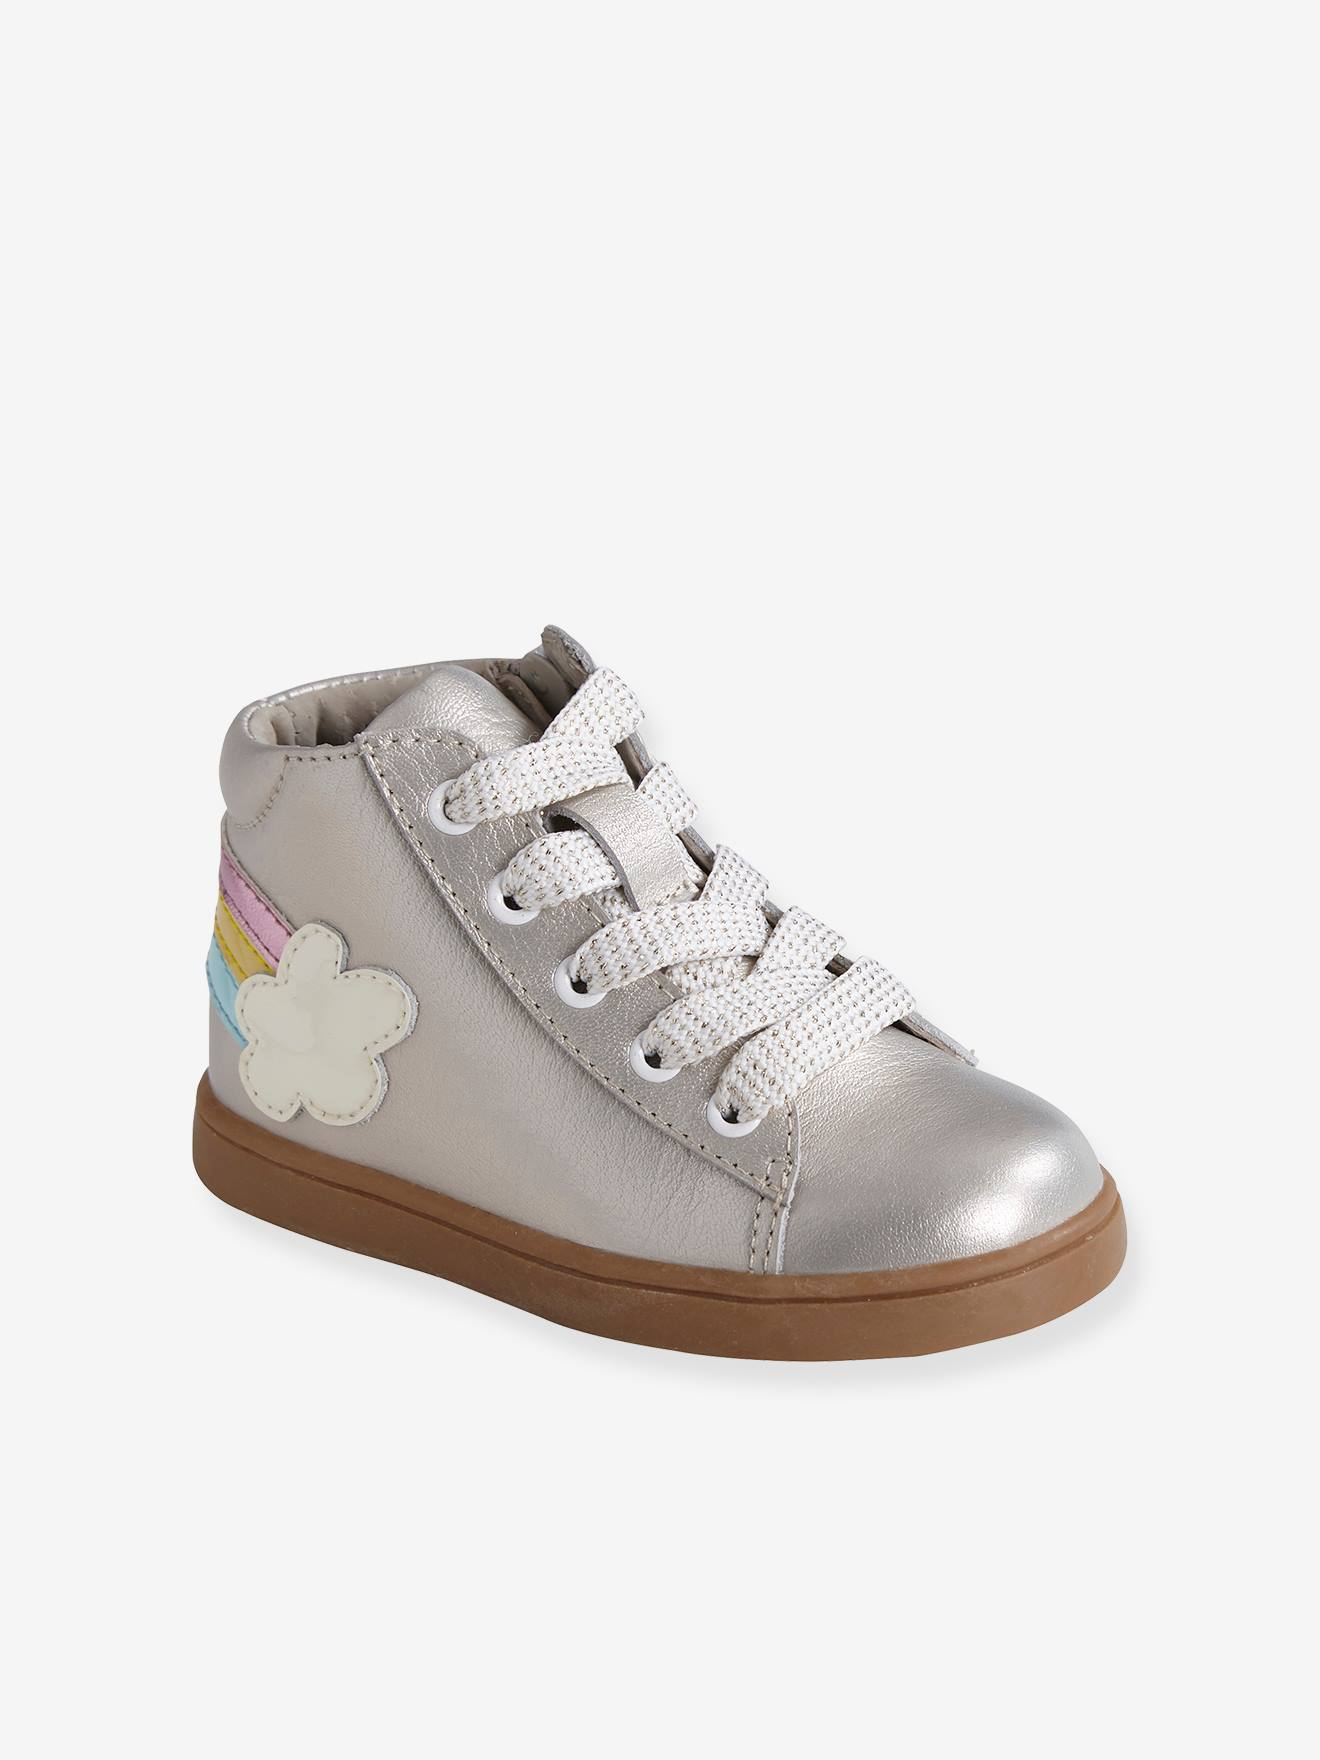 iridescent-leather-trainers-for-baby-girls